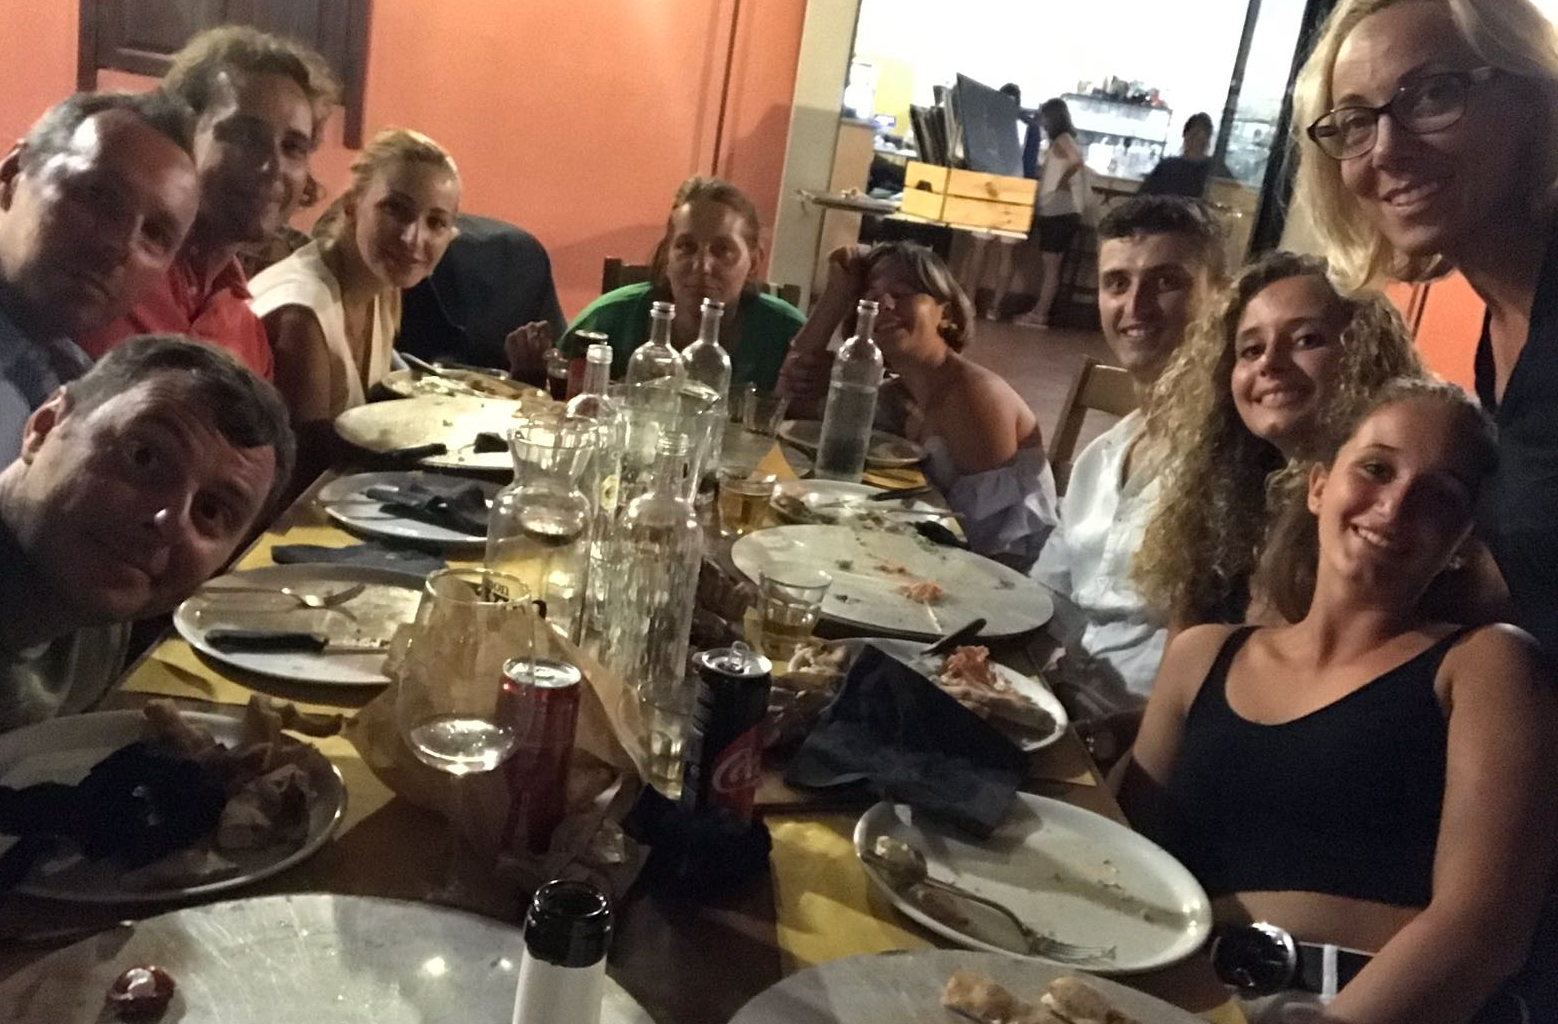 OUR EXTENDED FAMILY ENJOYING PANIGACCI, TESTAROLI AND FARINATA. A VERY CONVIVIAL WAY TO EAT! NOTE THEY ARE DRINKING MOSTLY WATER :)